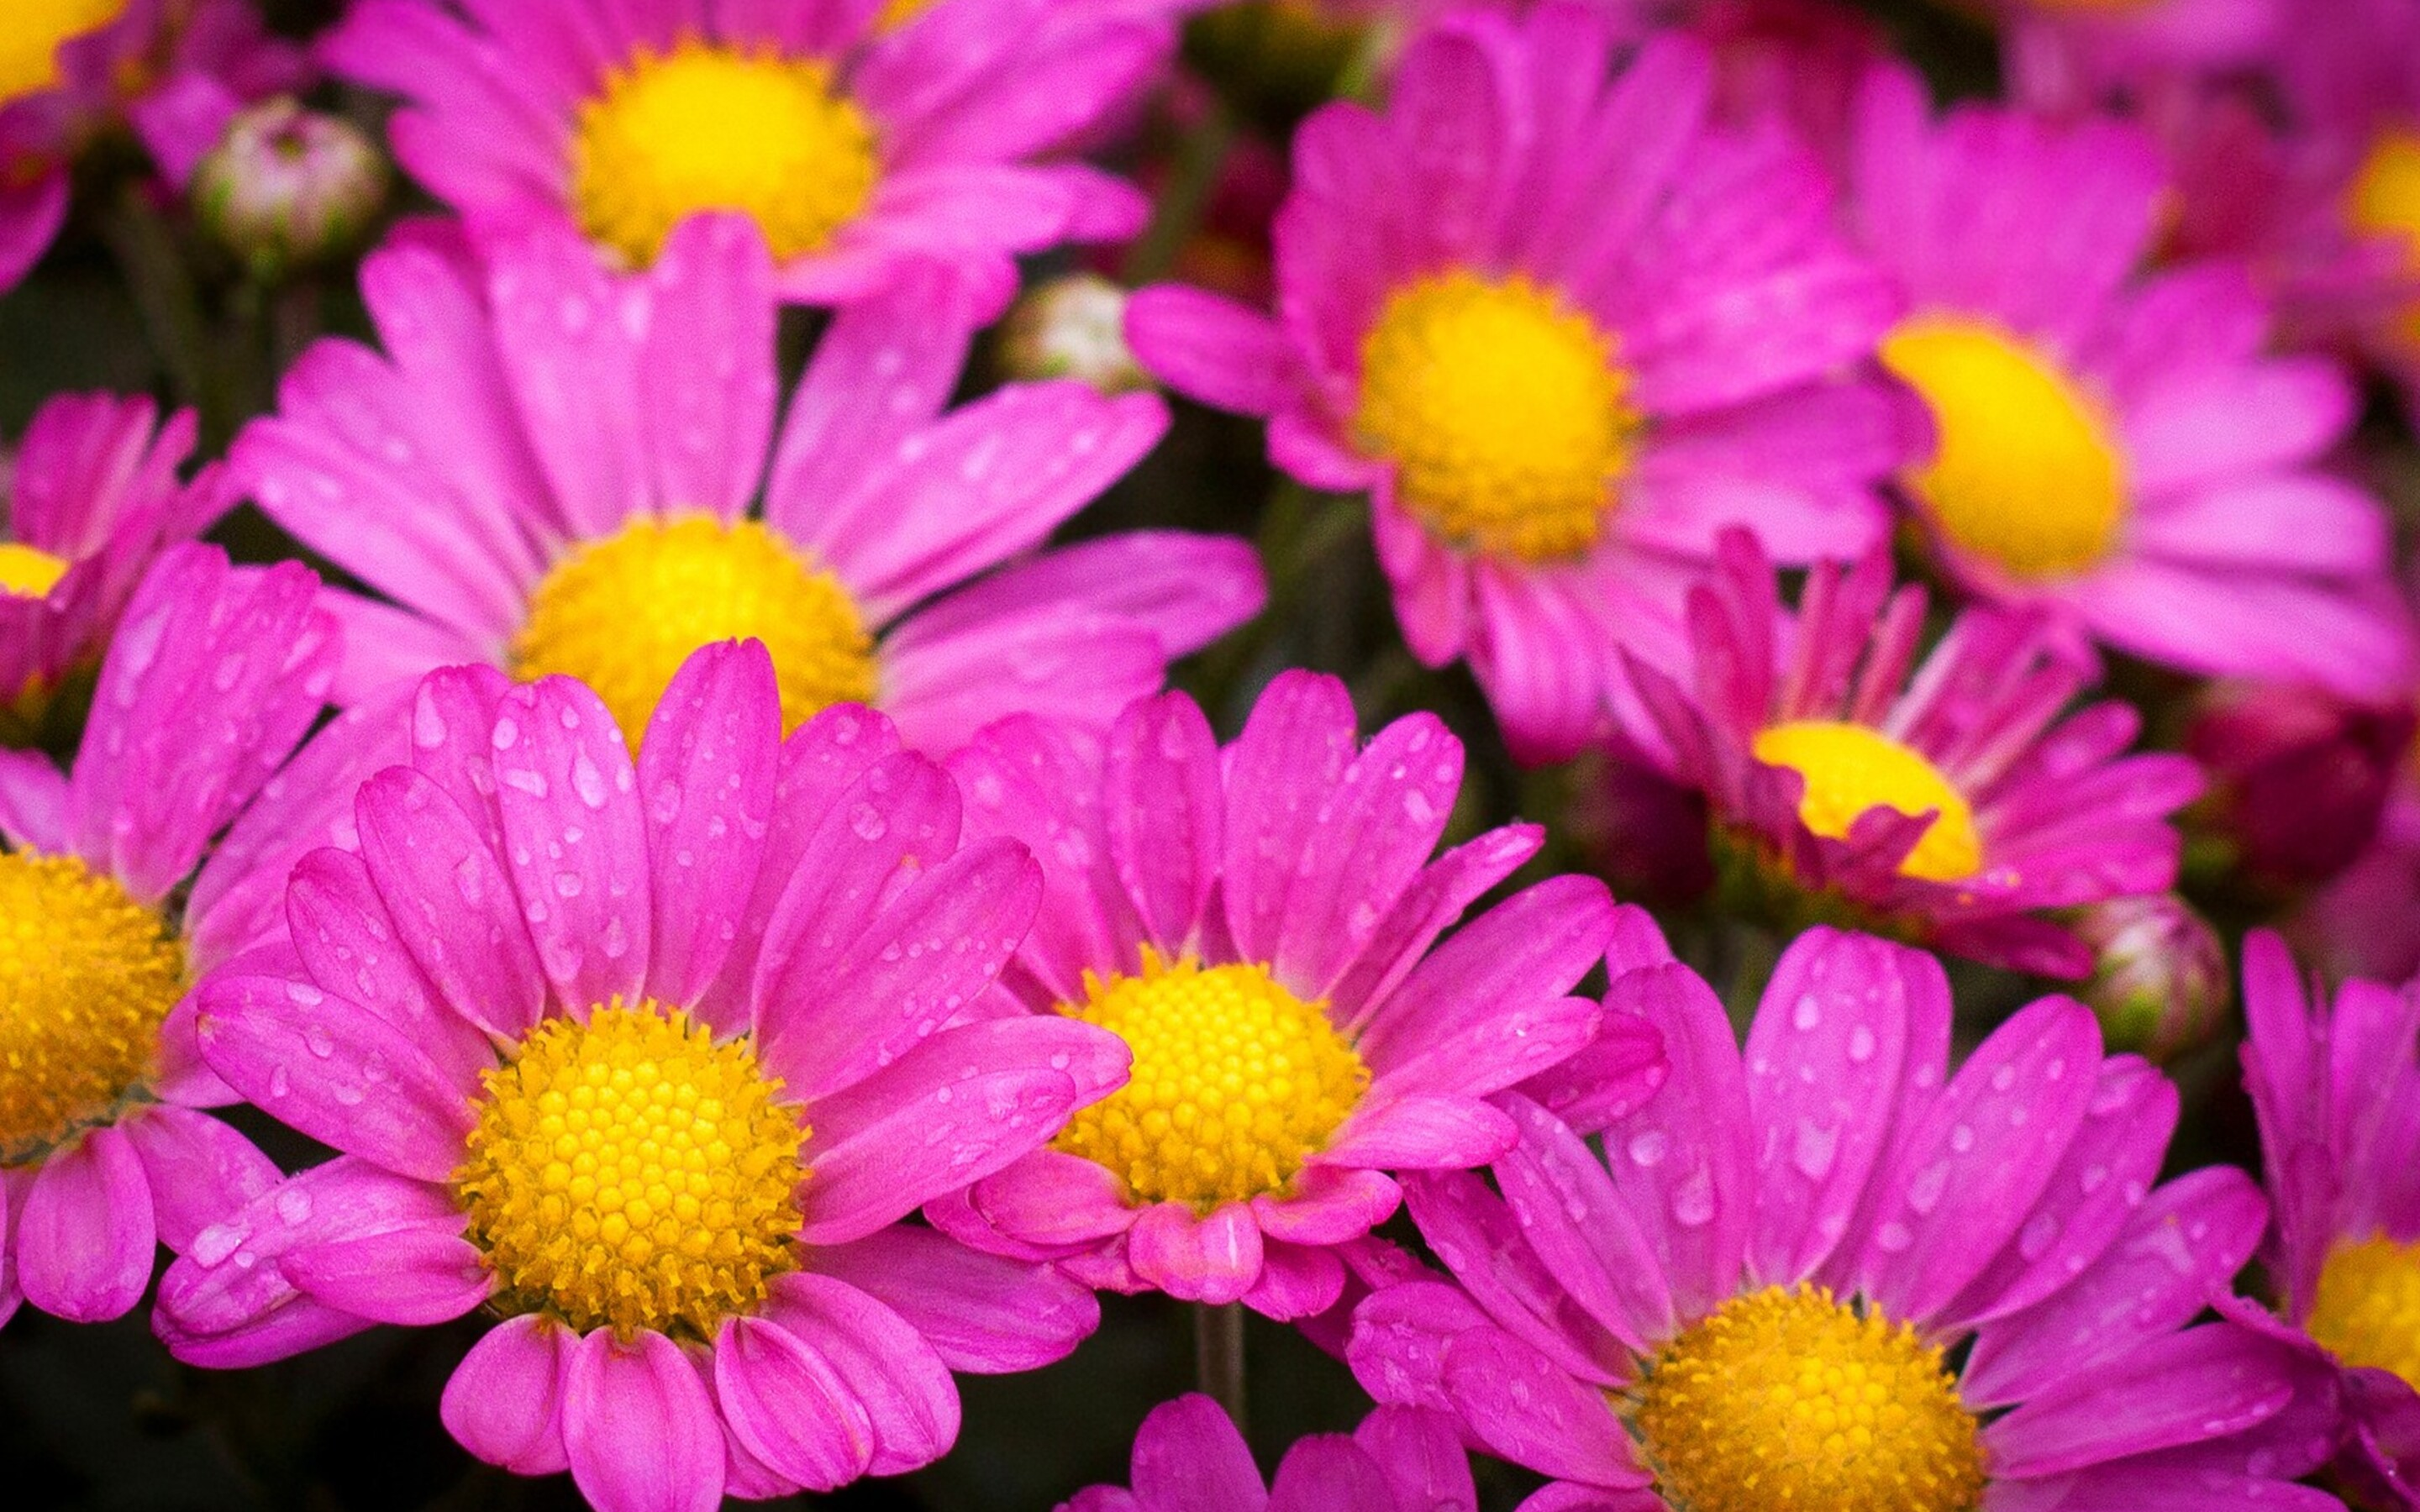 water-drops-on-pink-daisies.jpg